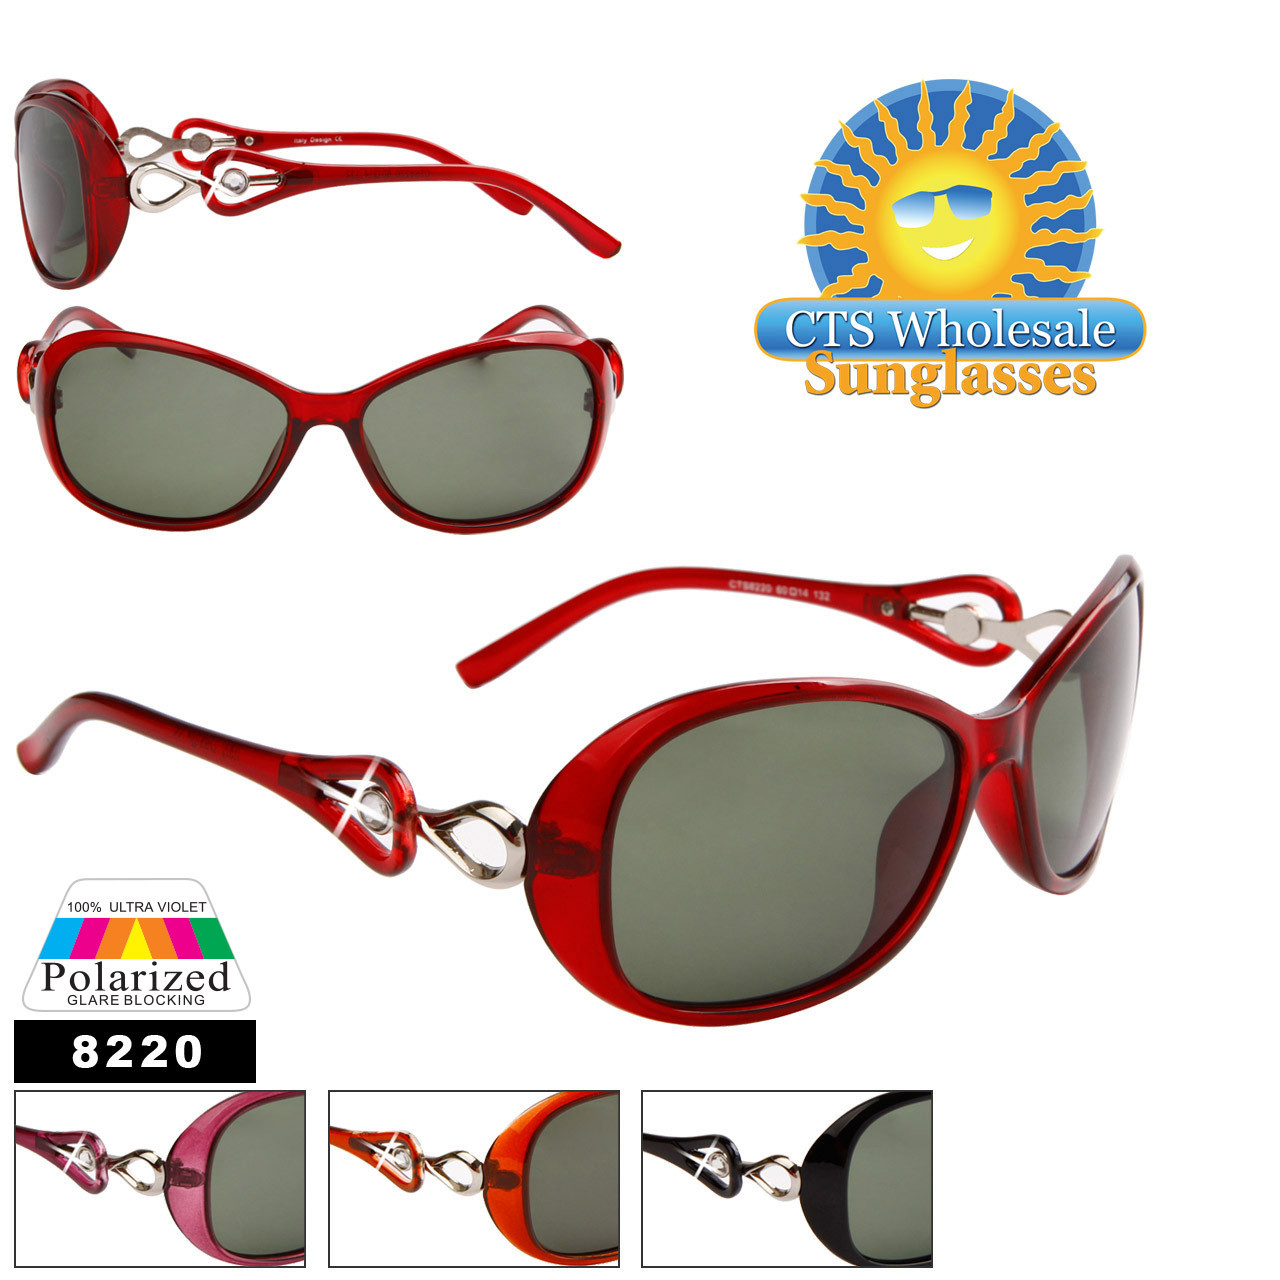 Bulk Women's Polarized Sunglasses - 8220 (12 pcs.) Assorted Colors